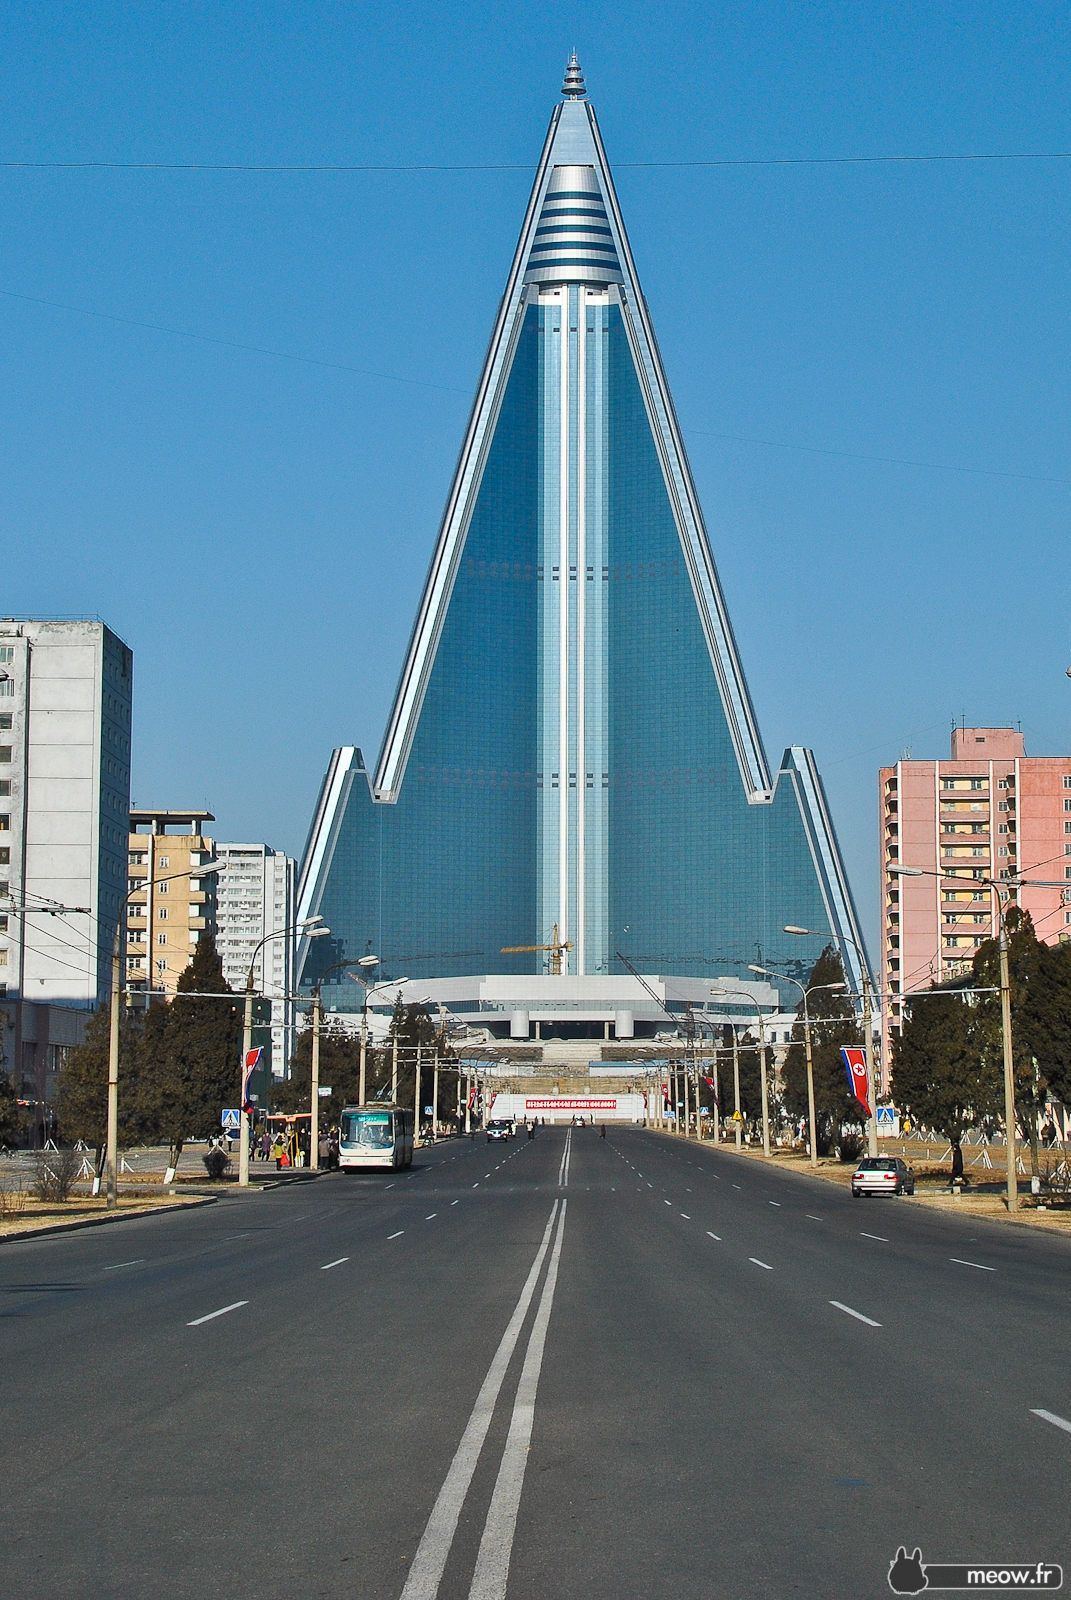 Ryugyong hotel interior - Find This Pin And More On Architecture And Interior Design